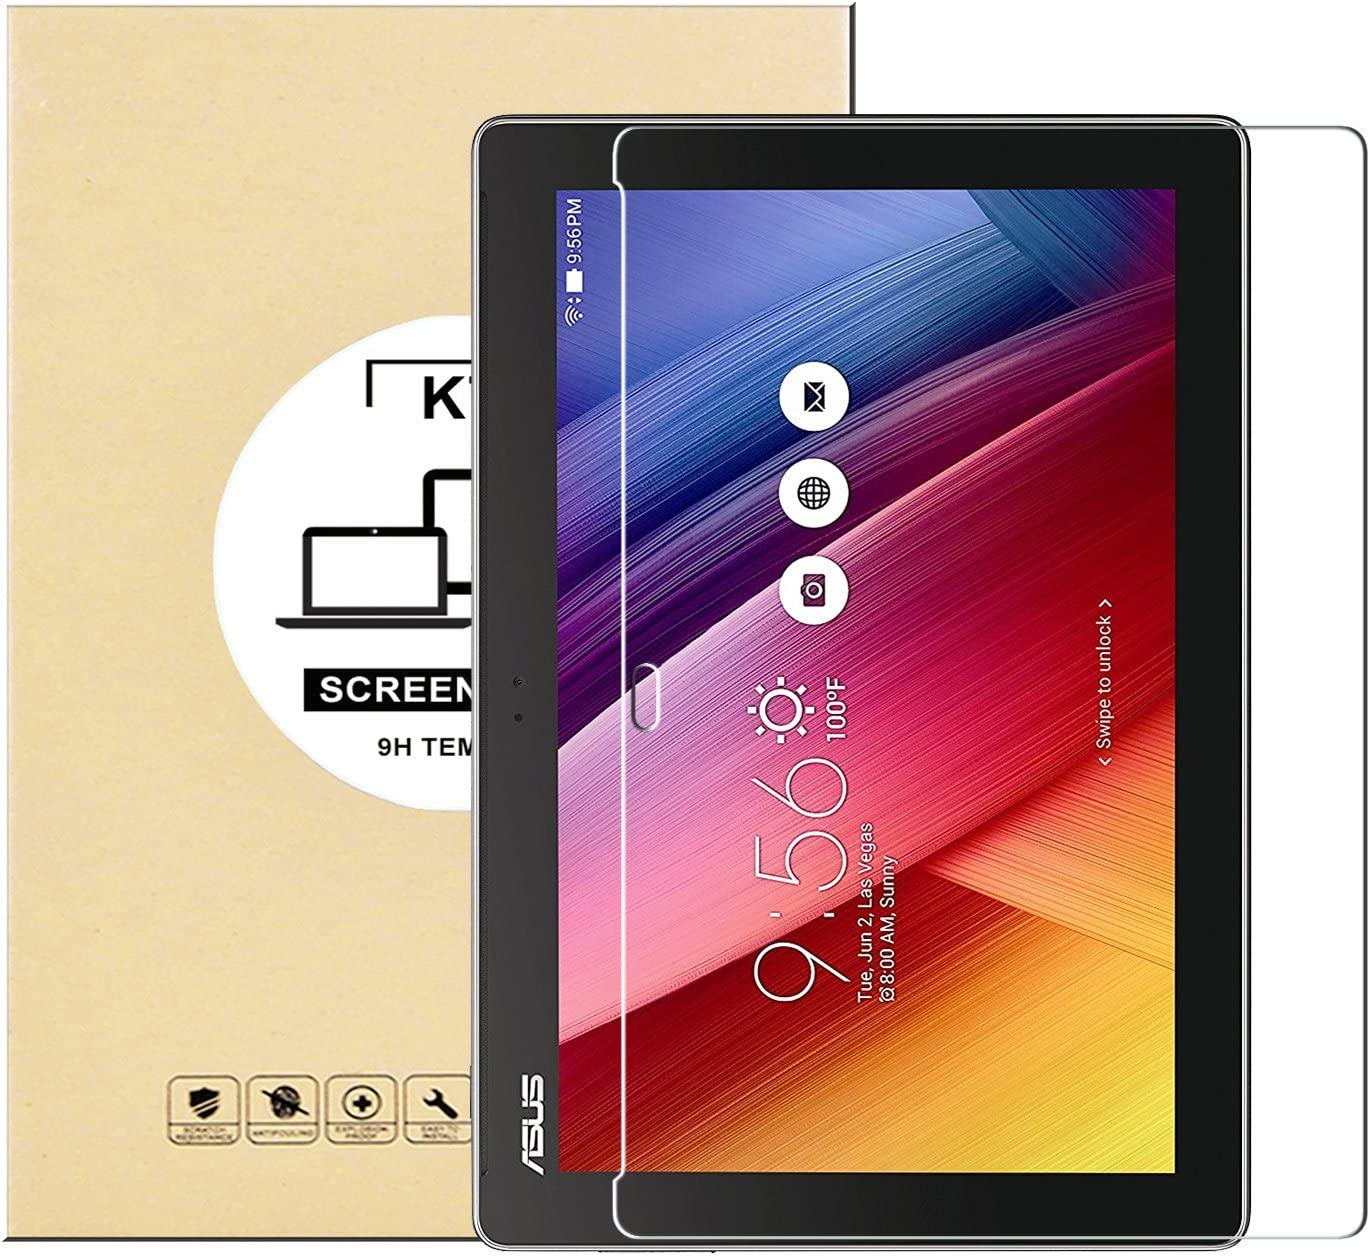 KTtwo Asus Zenpad 10 Z300M (10.1 Inch) Screen Protector Glass, 9H Hardness Tempered Glass Anti-Scratch Bubble-Free Screen Protector for Asus Zenpad 10 Z300M/Z300C/Z300CL/Z300CG (10.1 Inch) Tablet